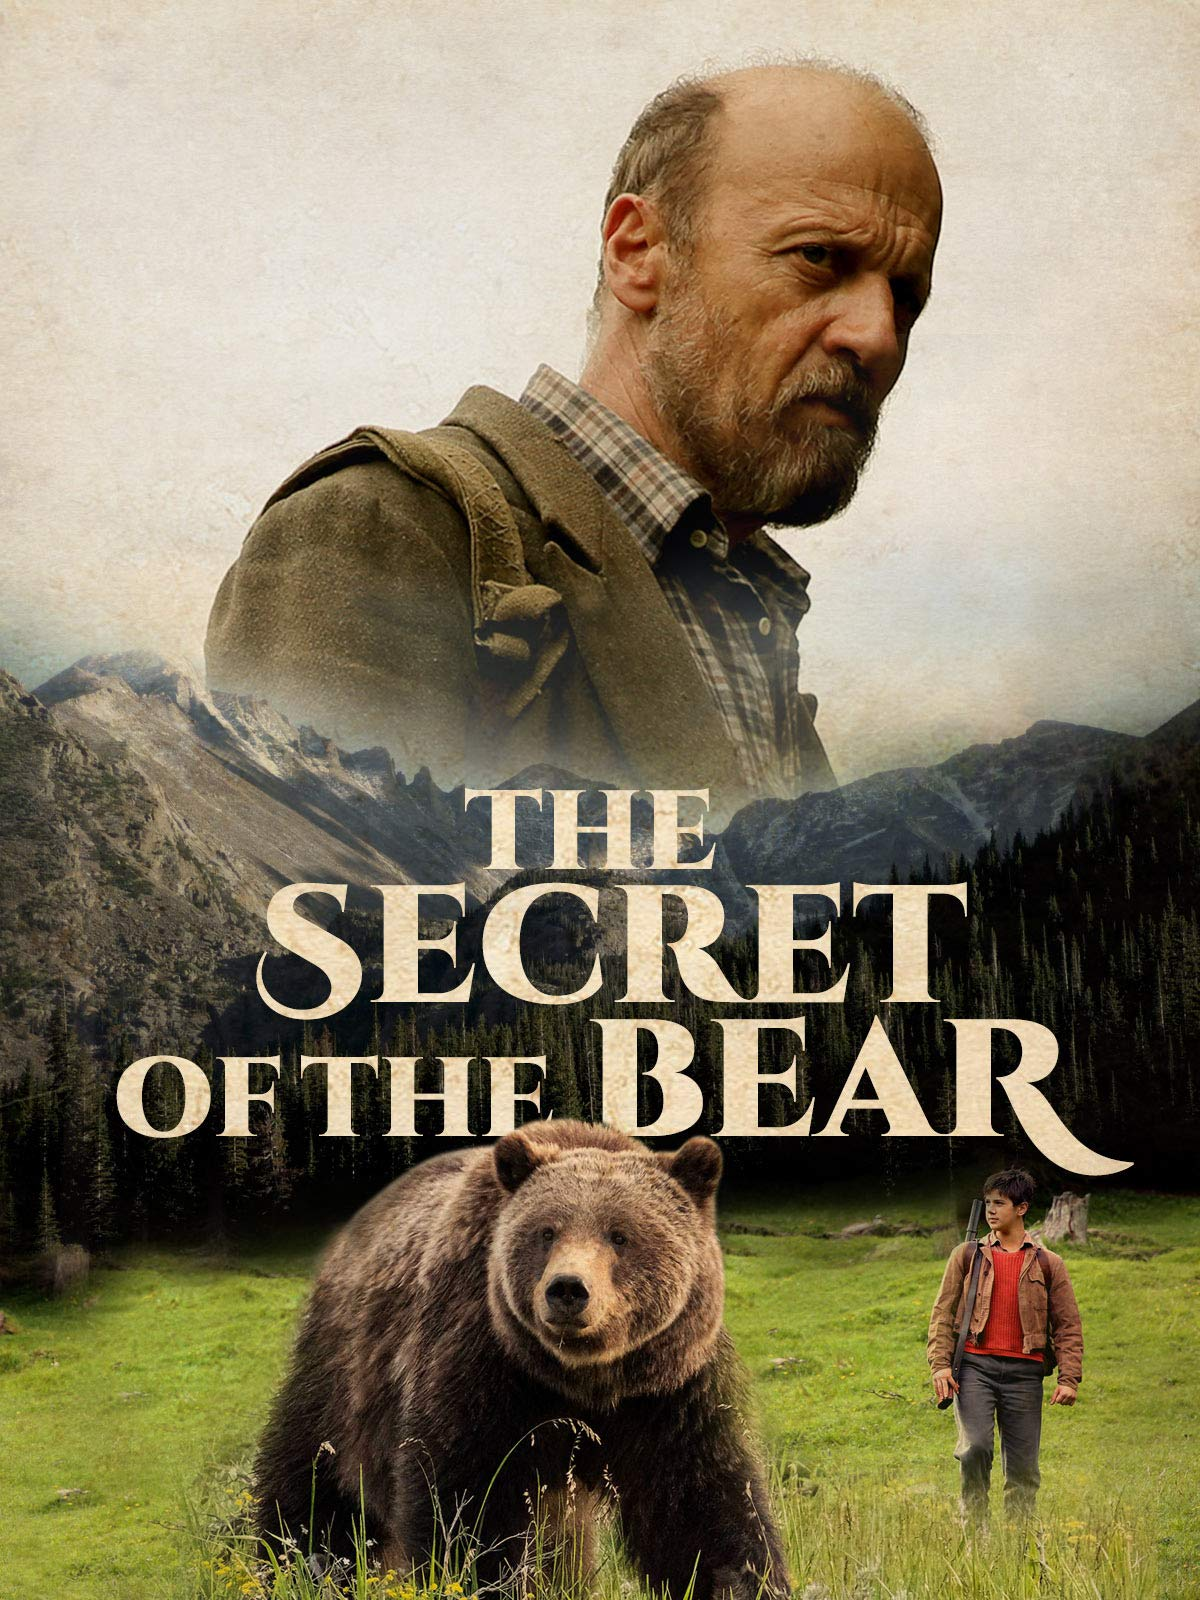 The Secret of the Bear